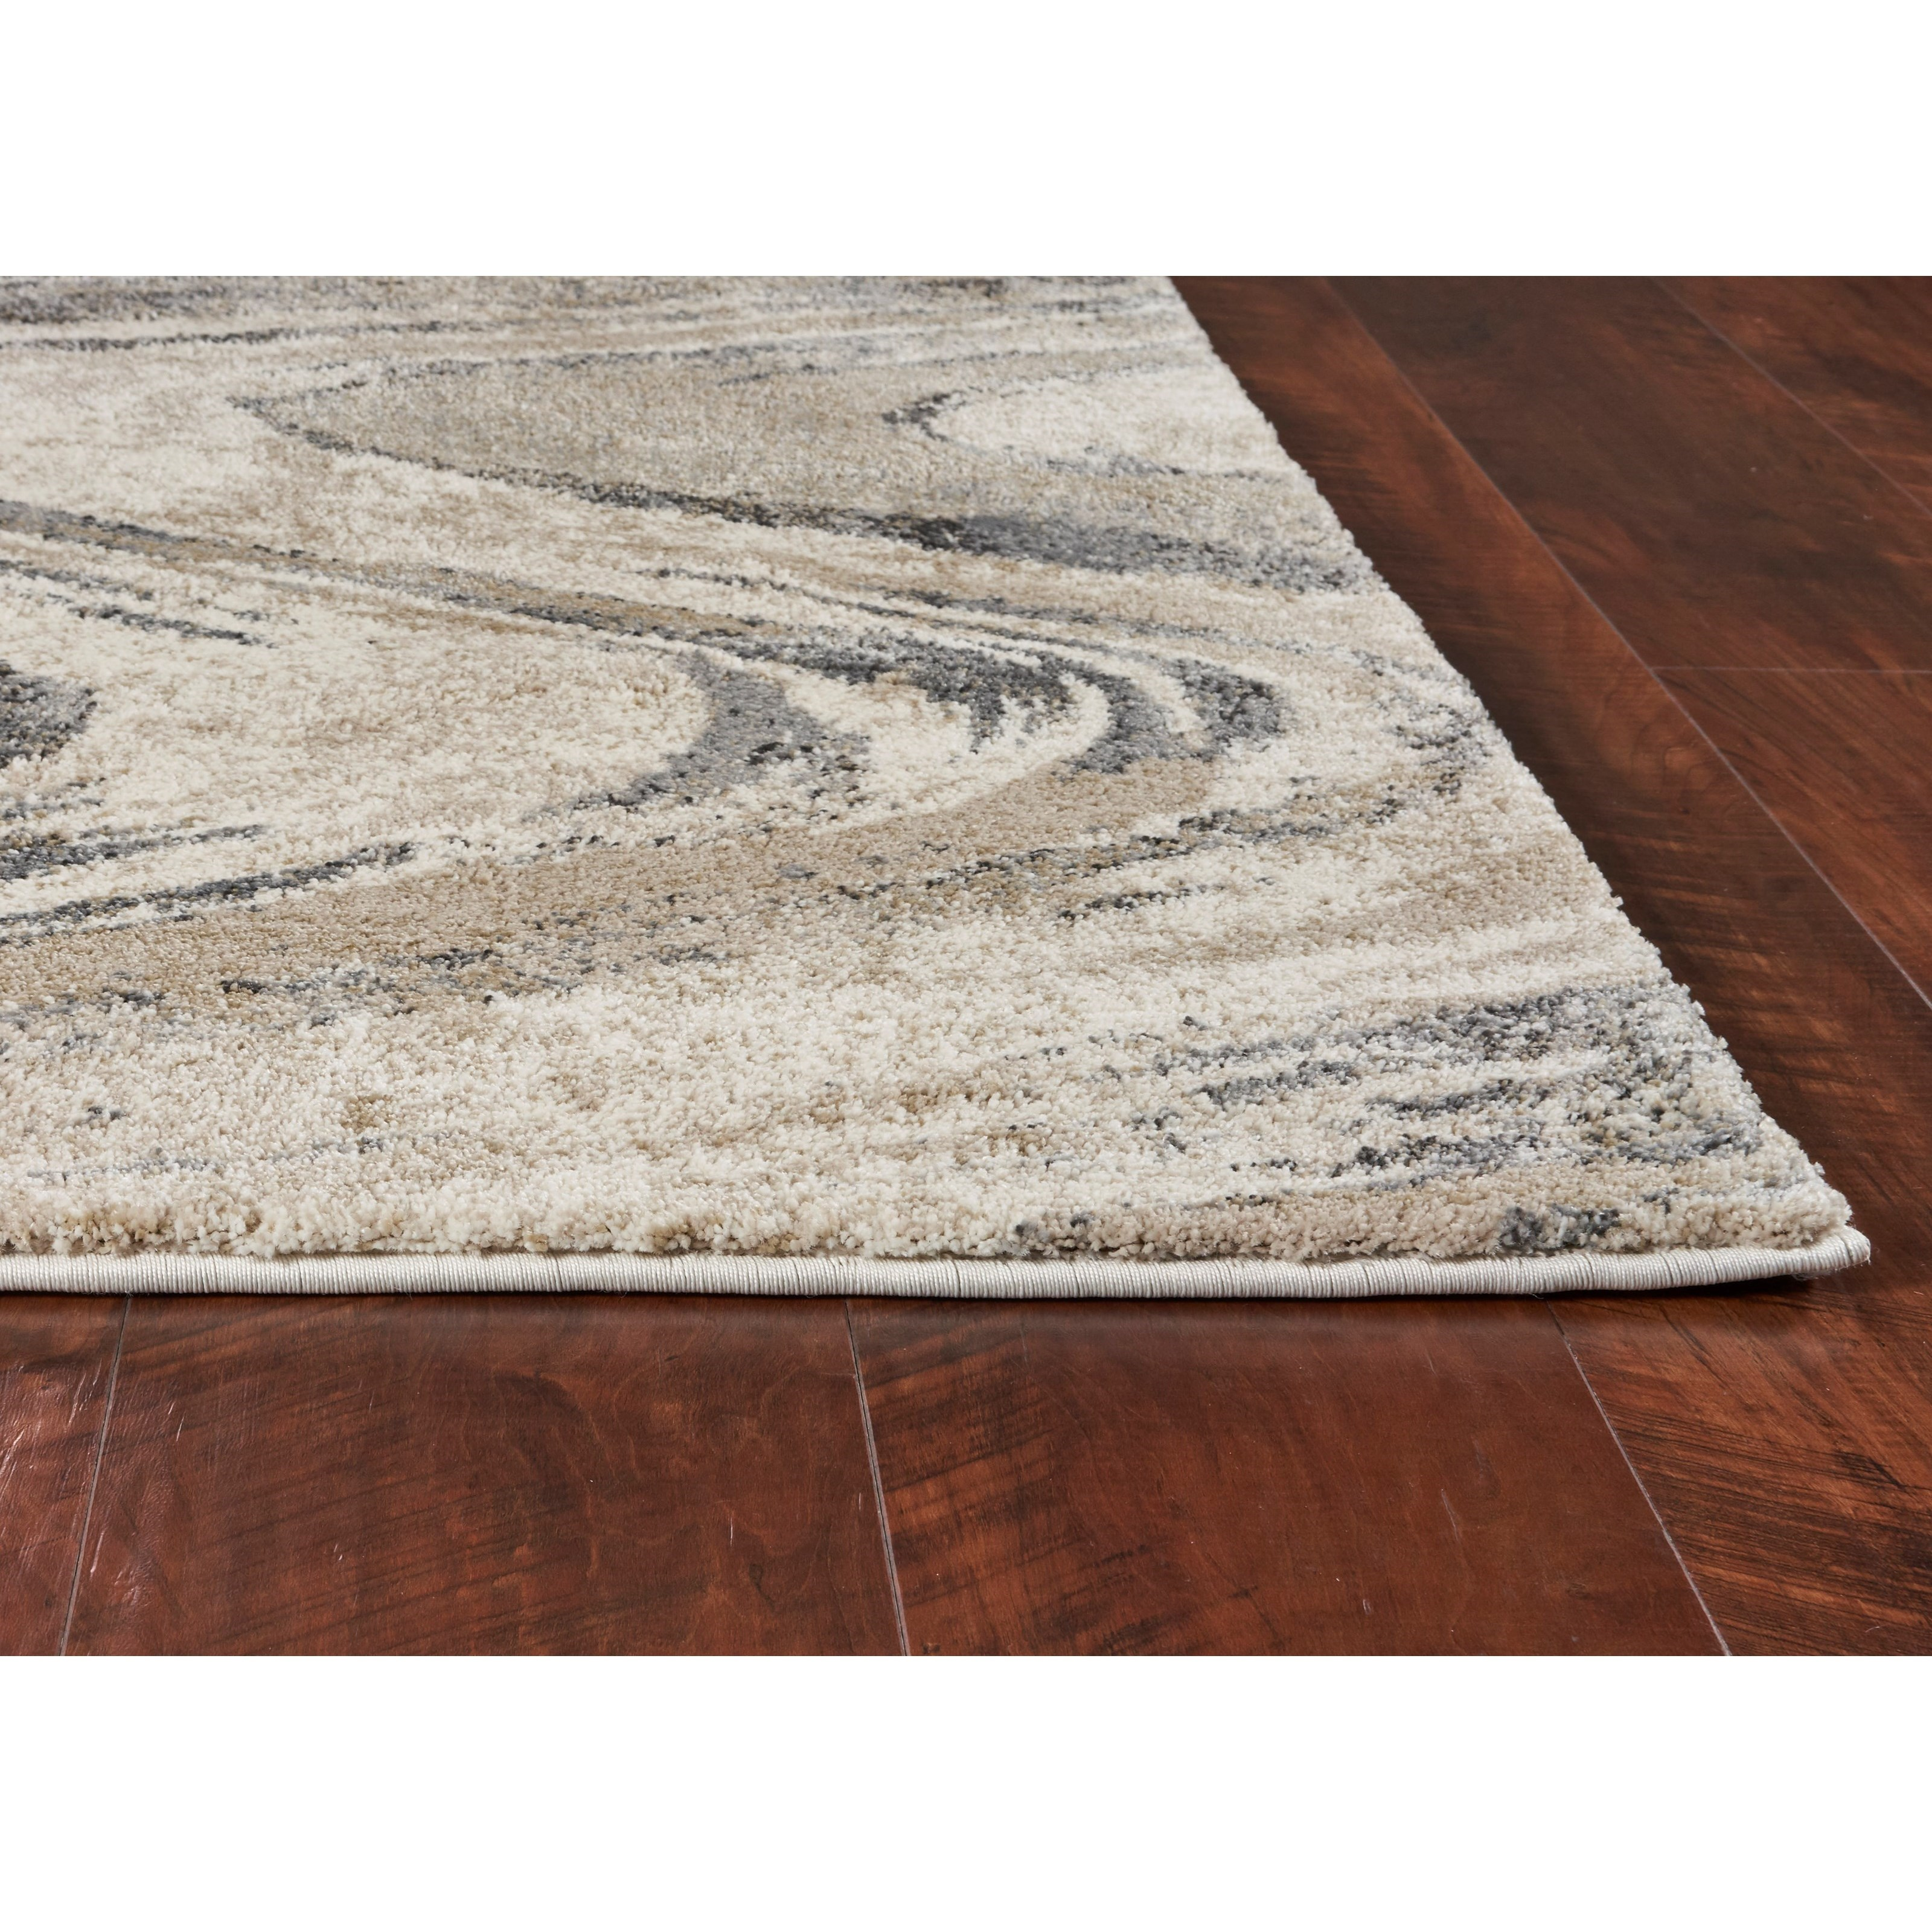 """2'2"""" x 7'6"""" Runner Natural Groove Rug"""